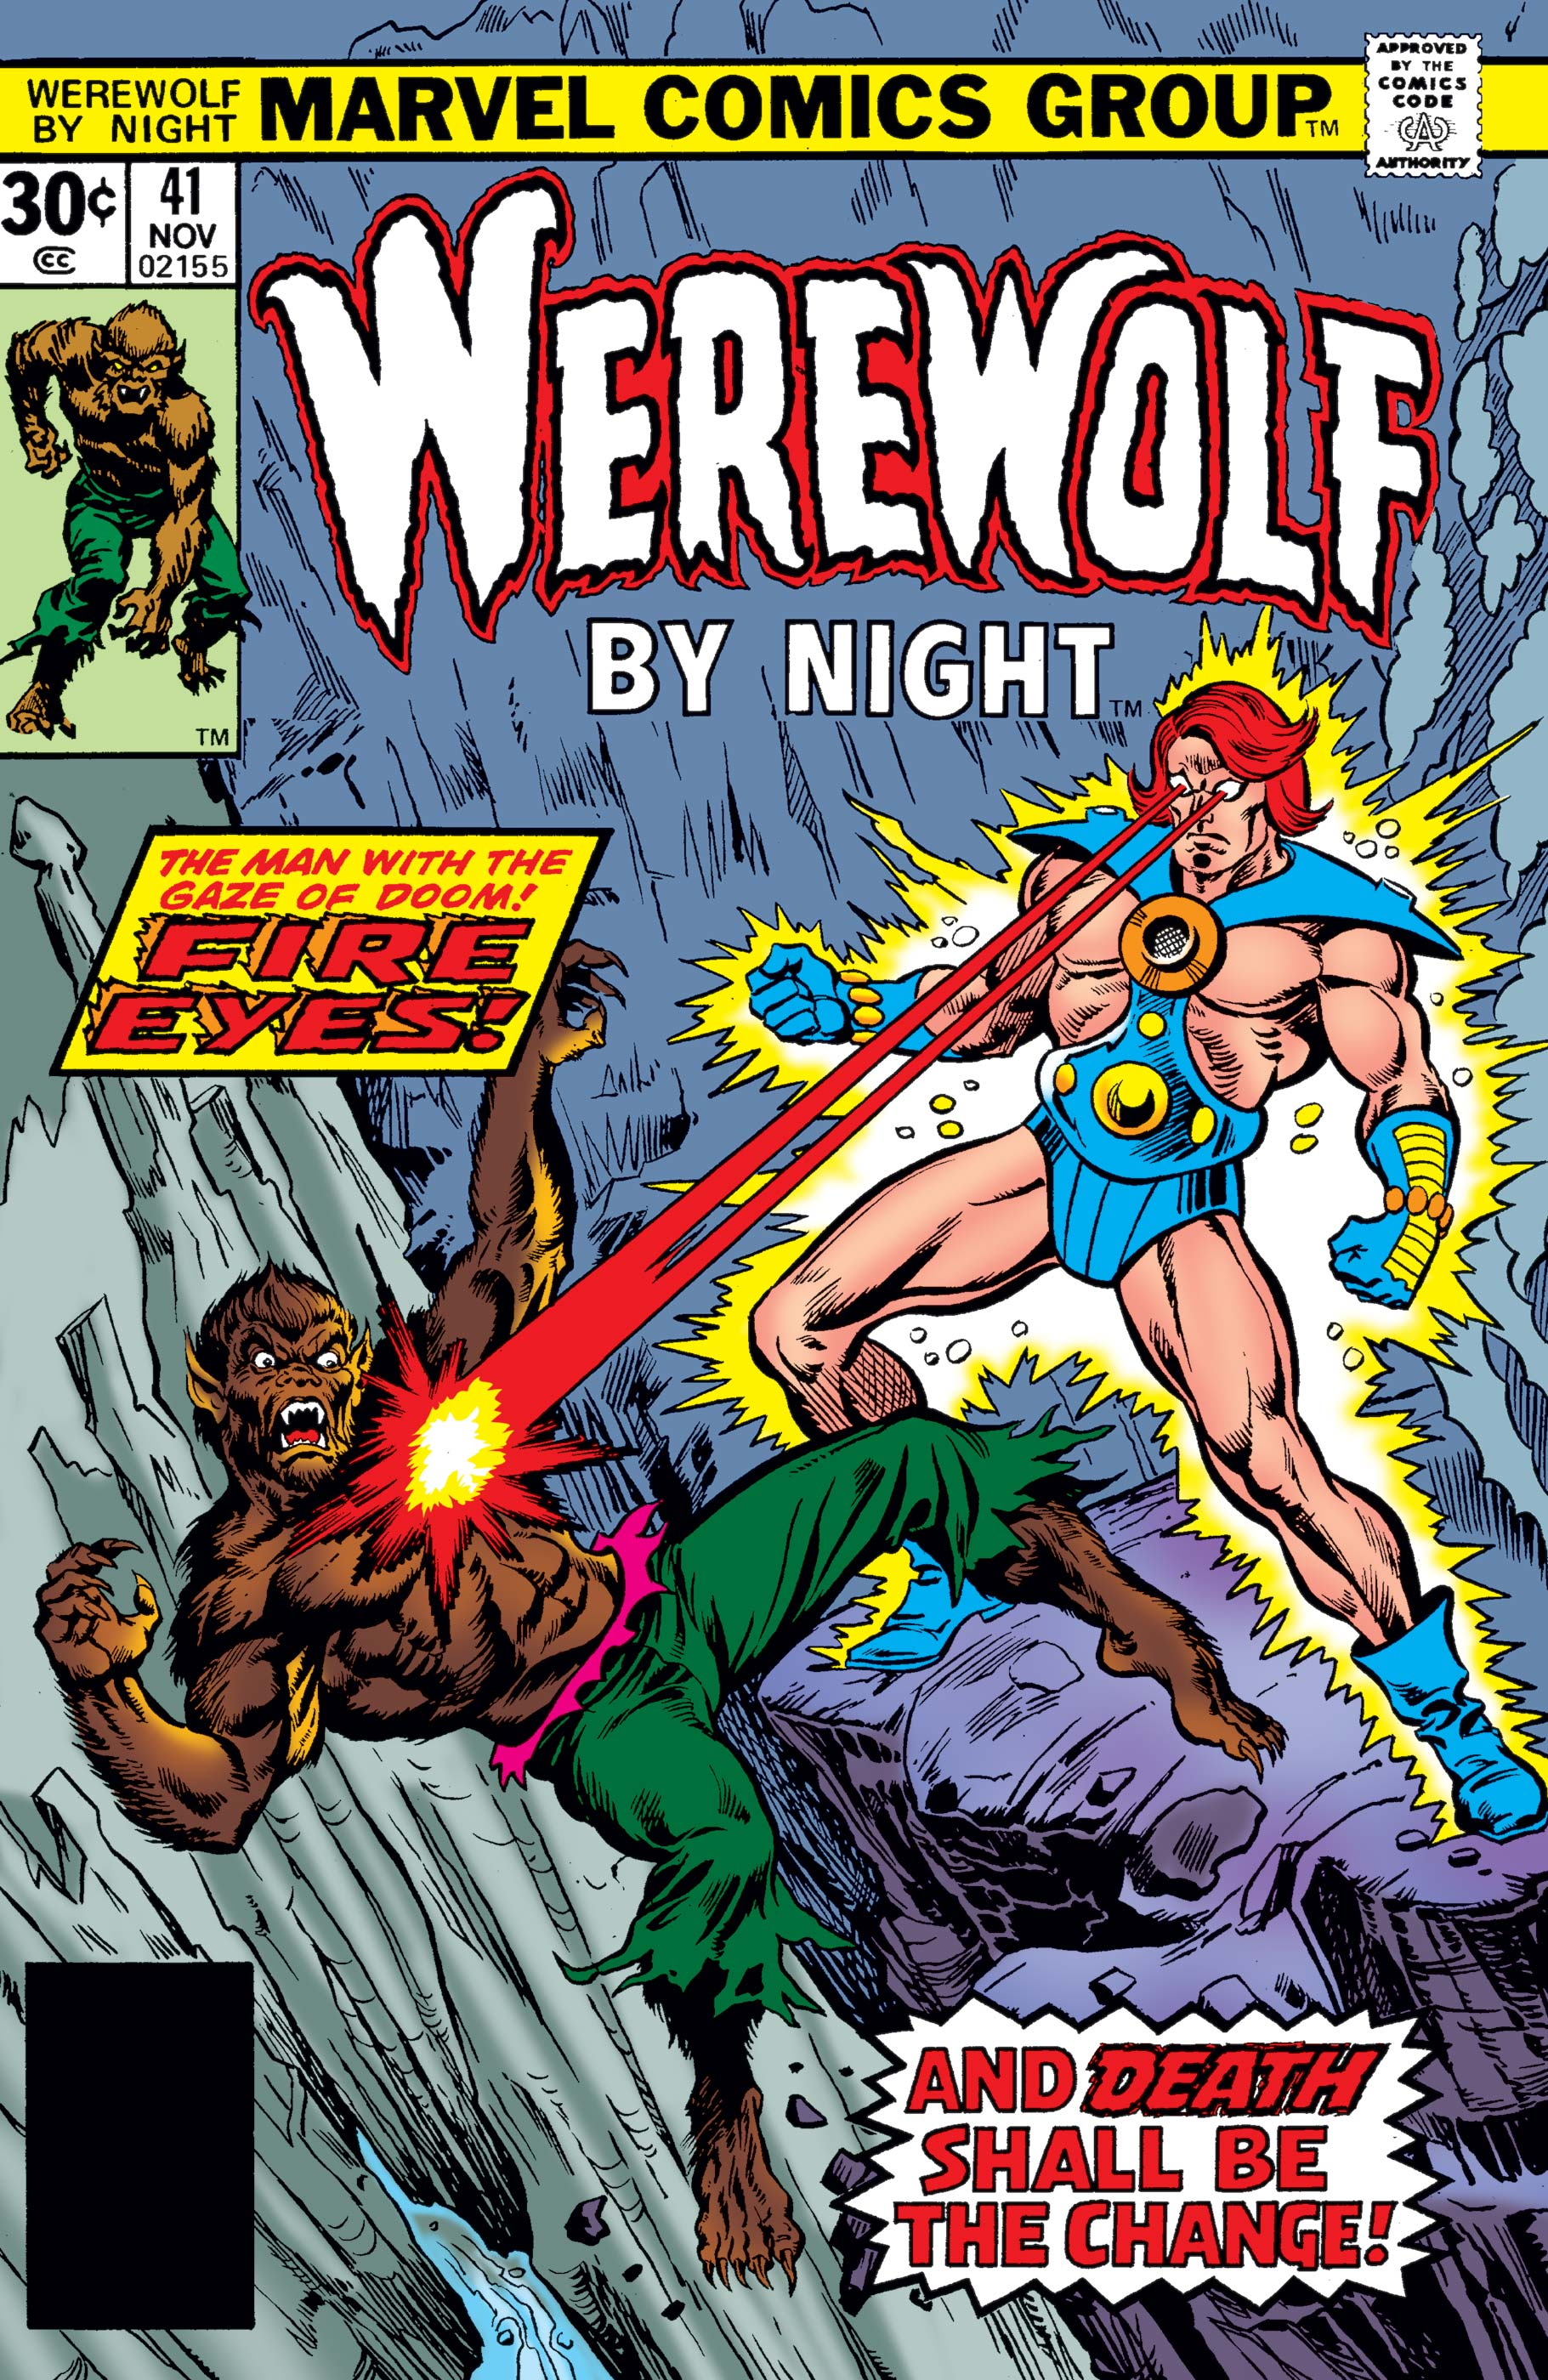 Werewolf By Night (1972) #41